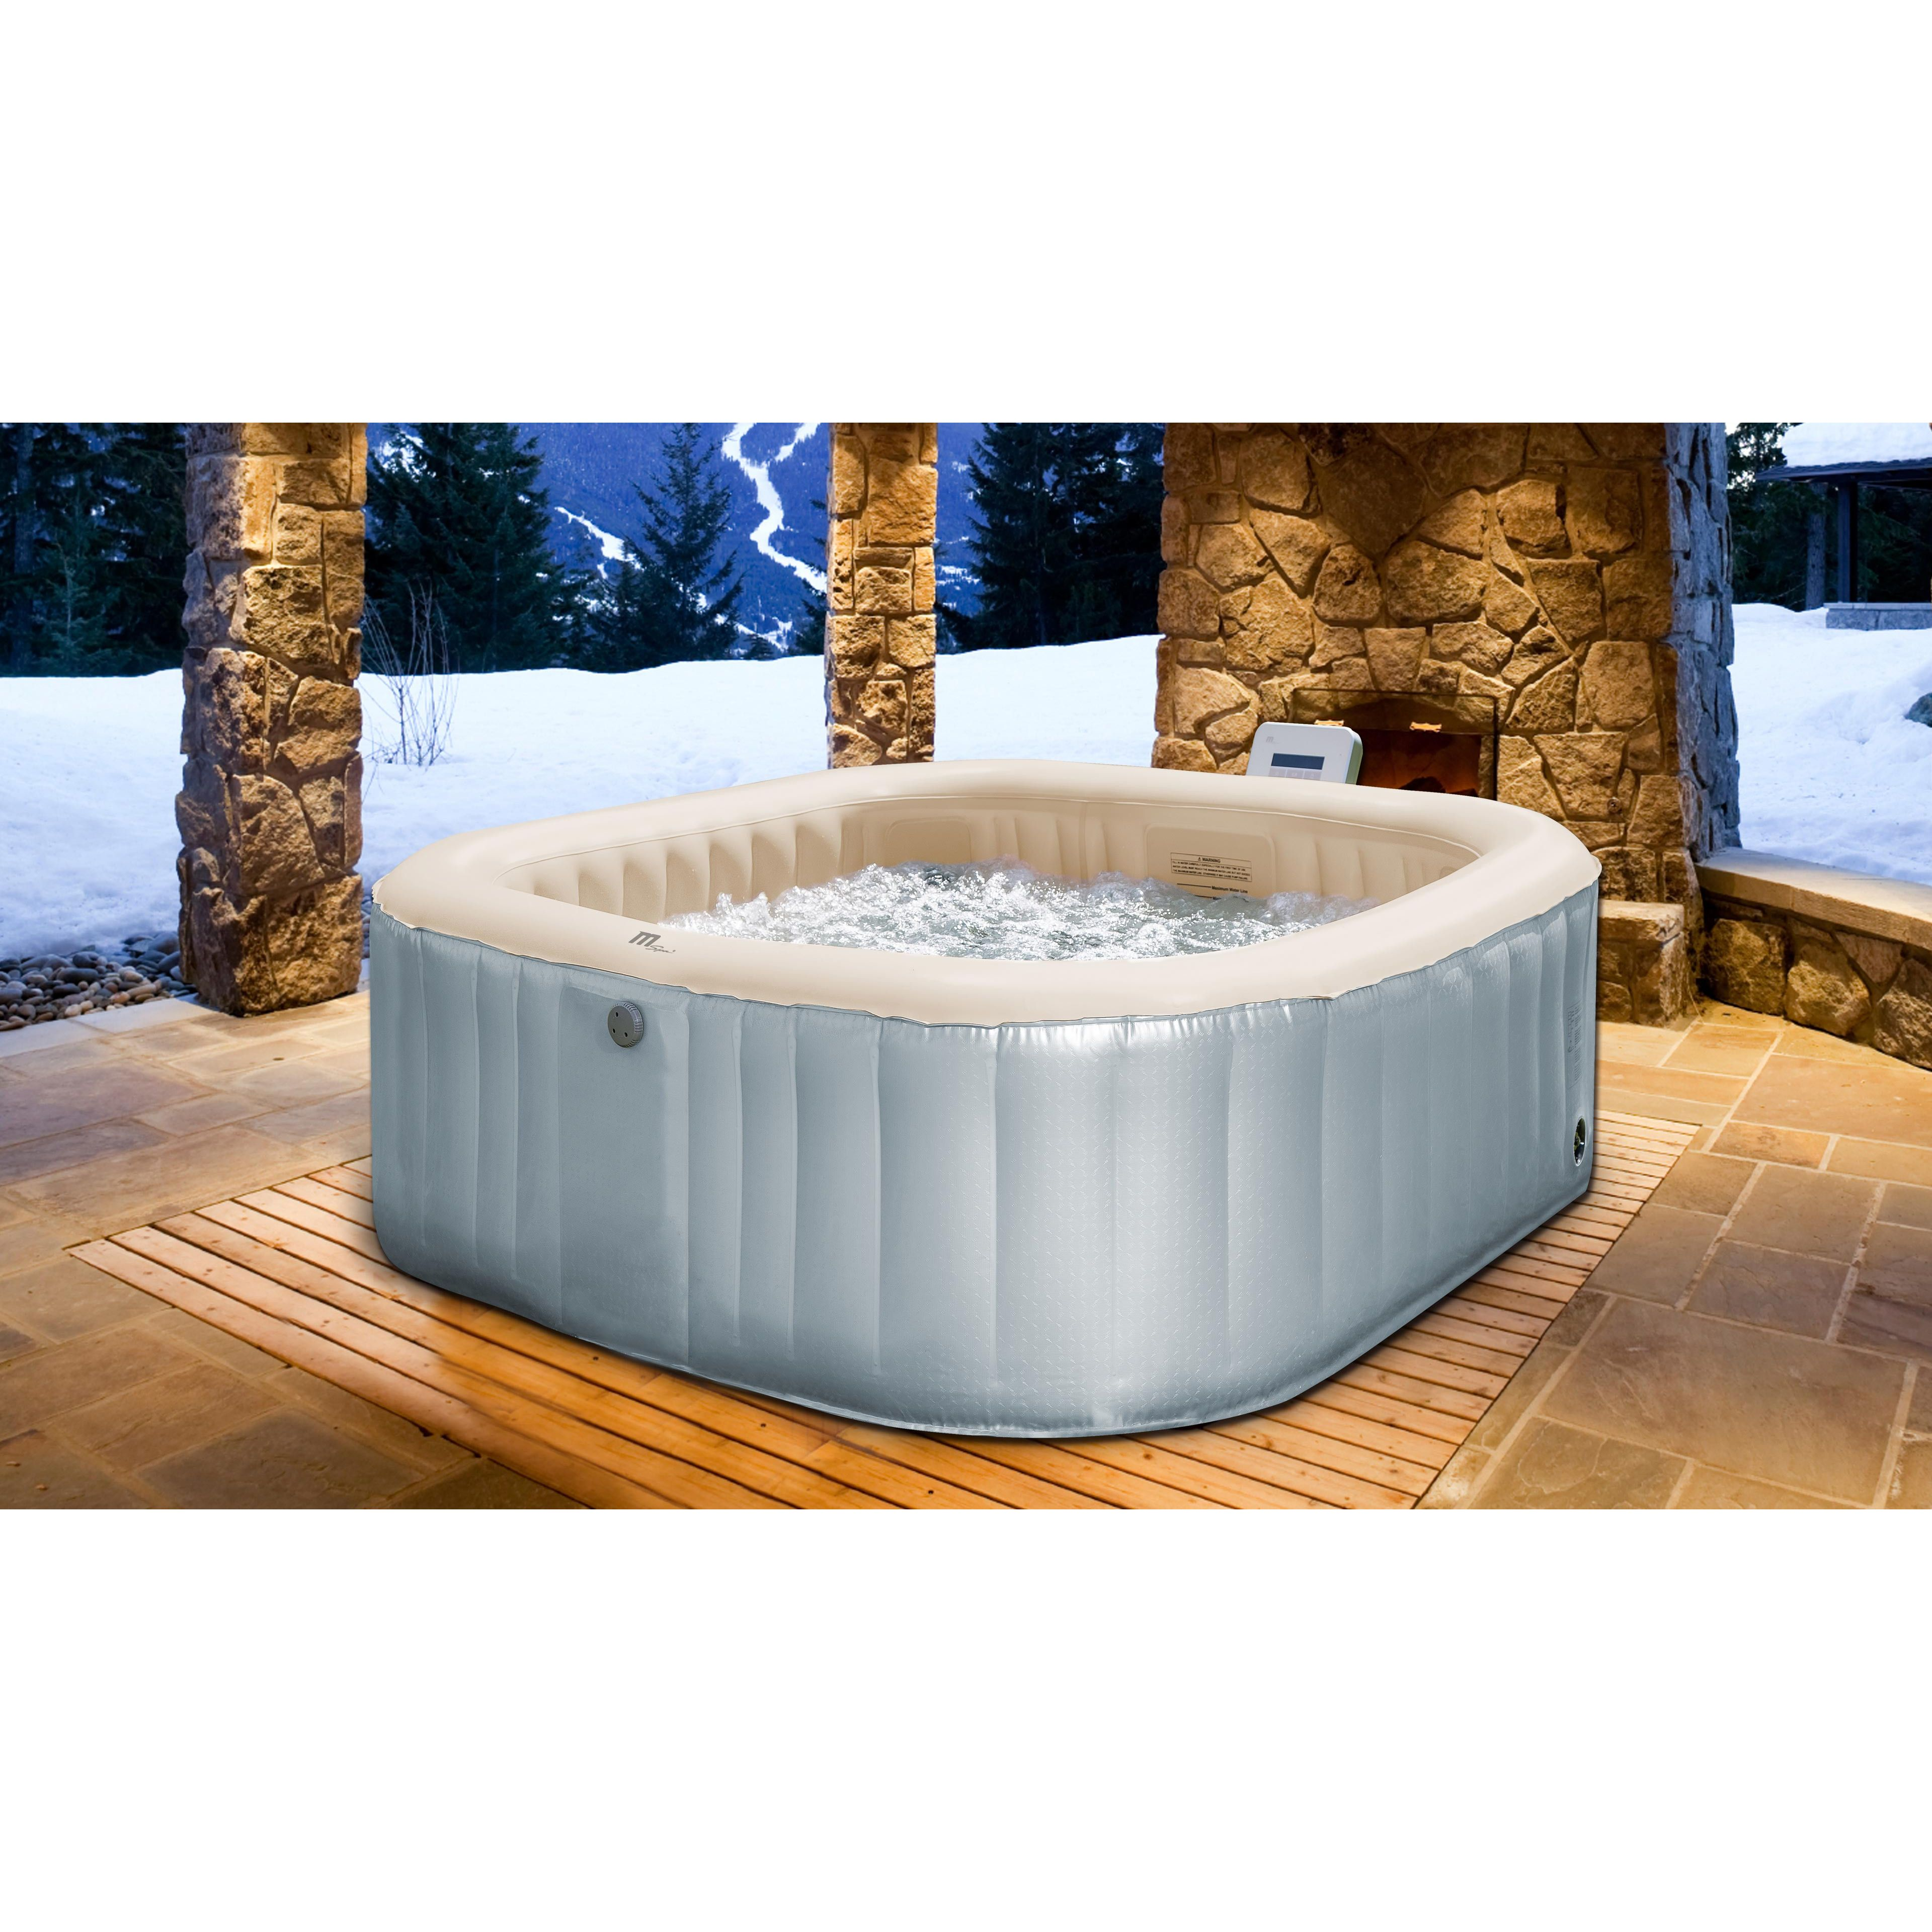 spa gonflable 6 places jacuzzi gonflable. Black Bedroom Furniture Sets. Home Design Ideas